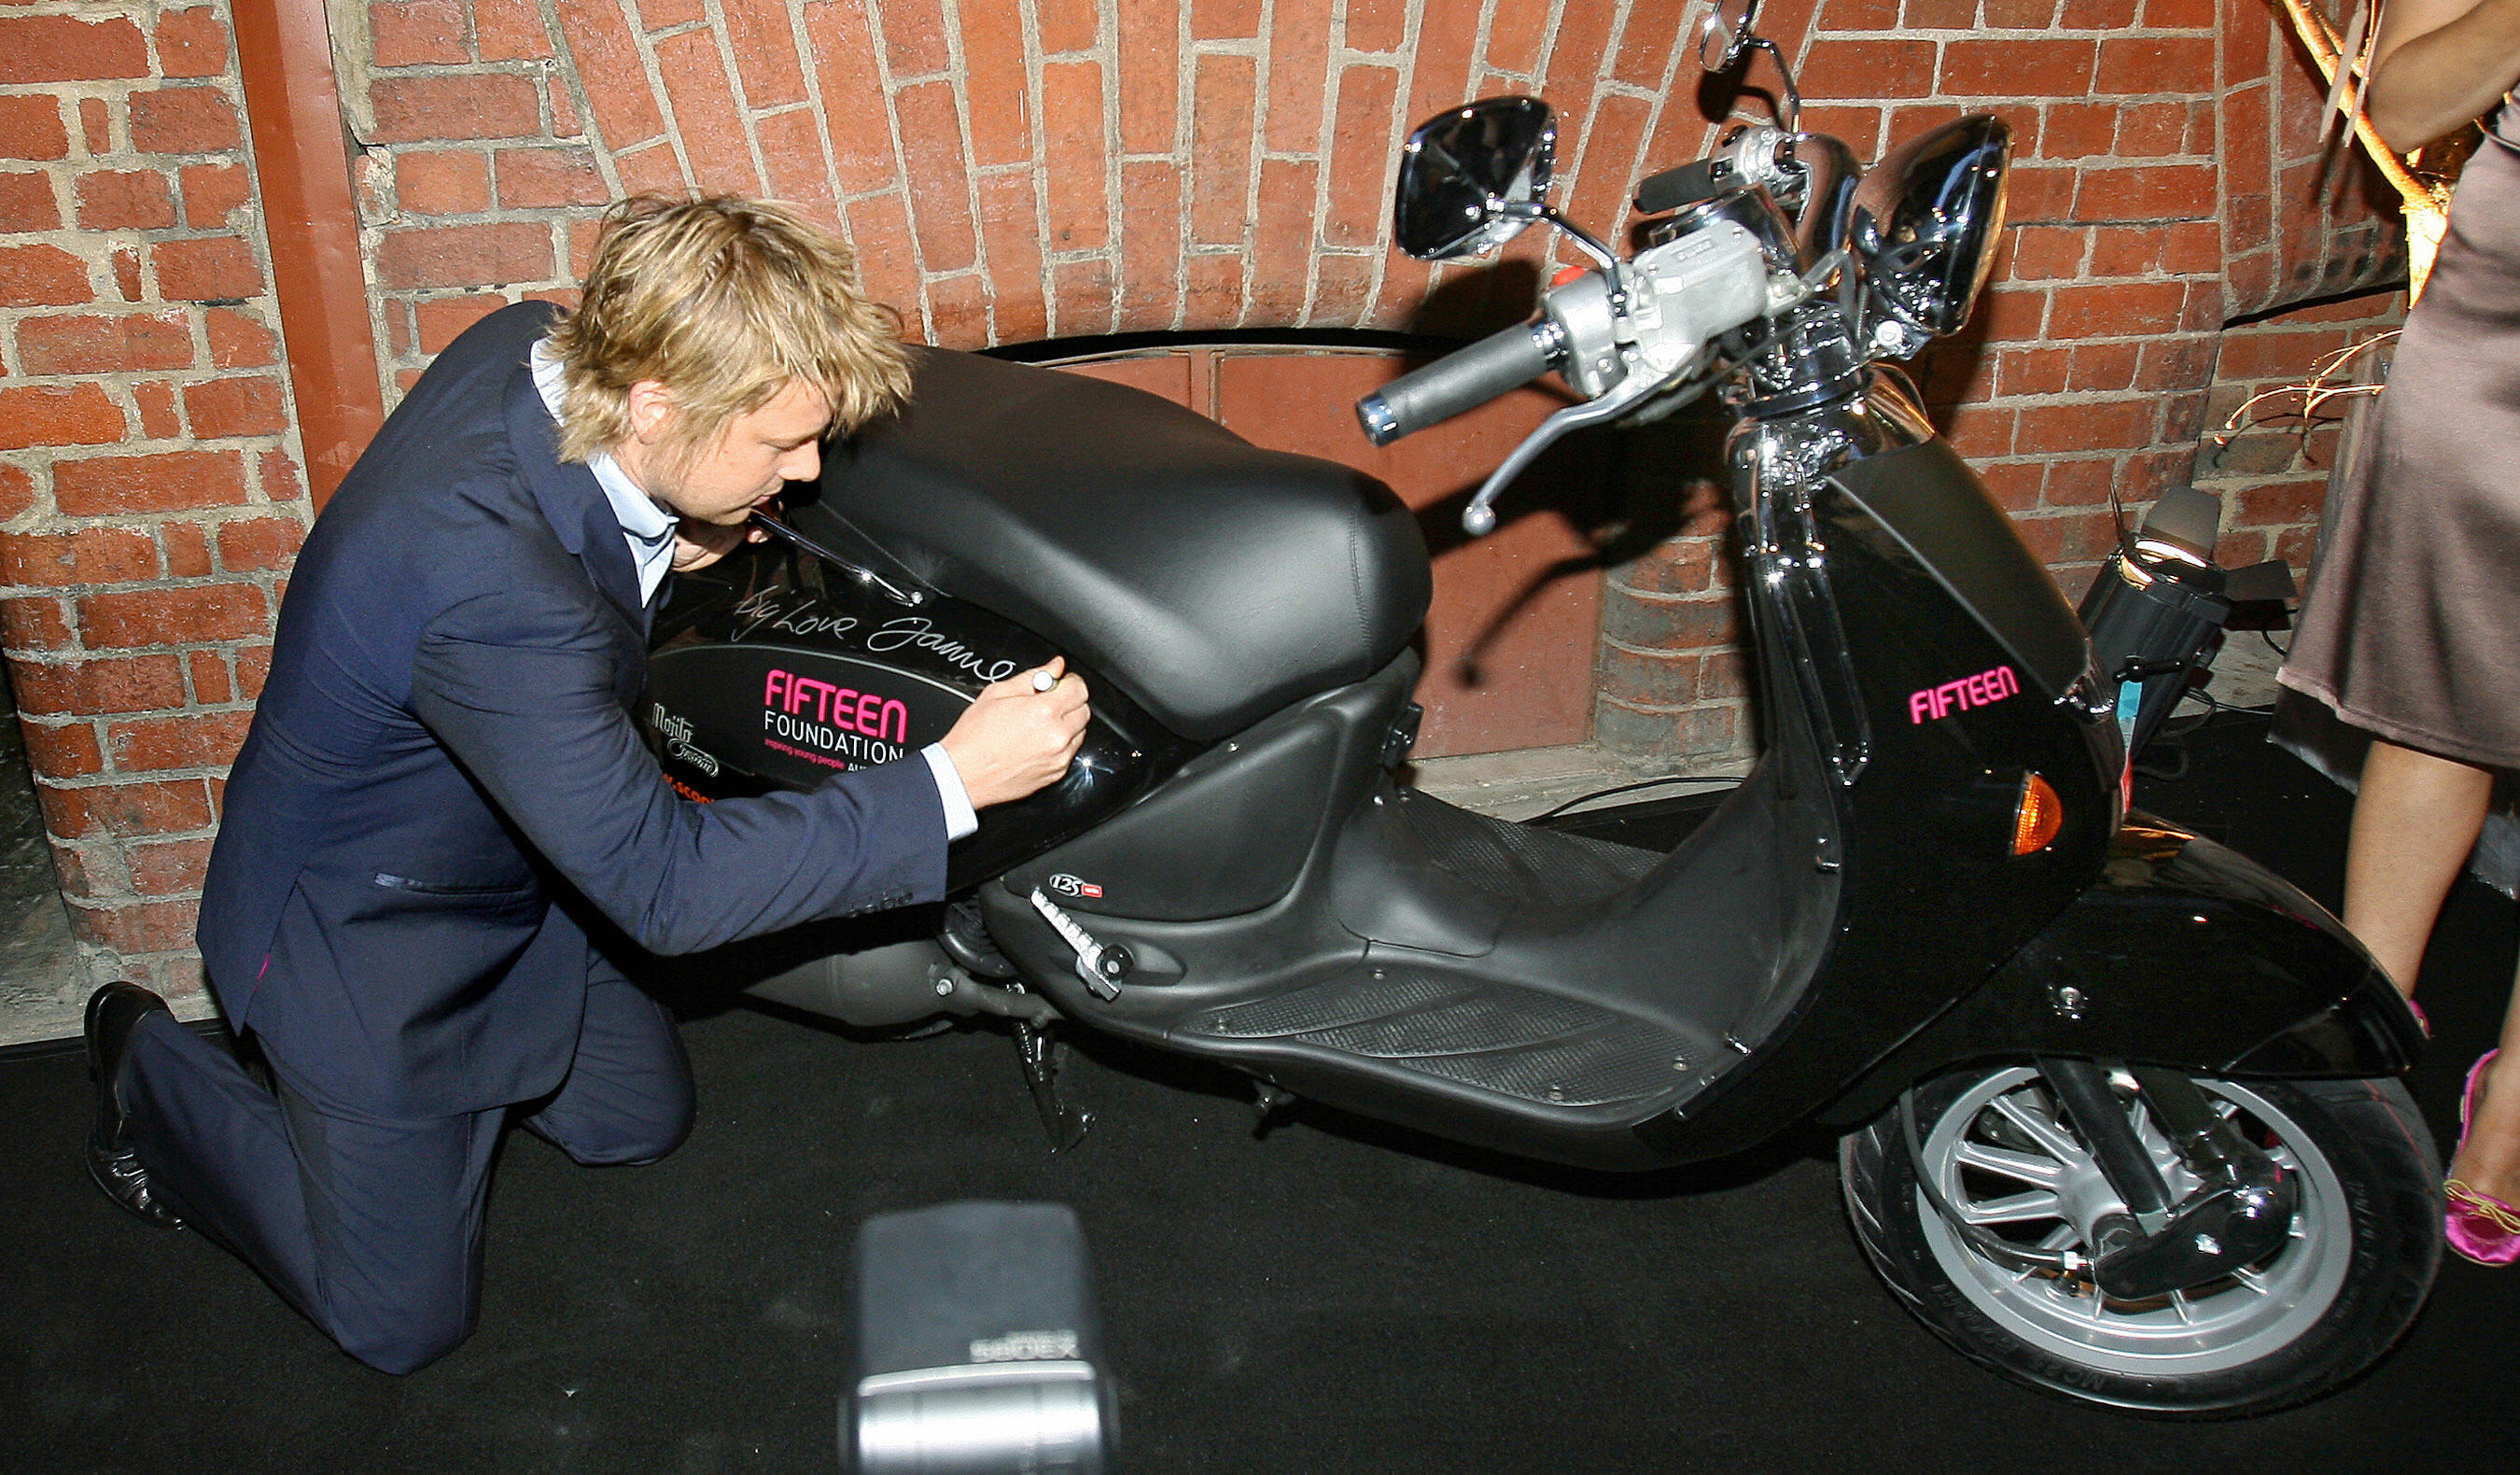 British celebrity chef Jamie Oliver signs a moped